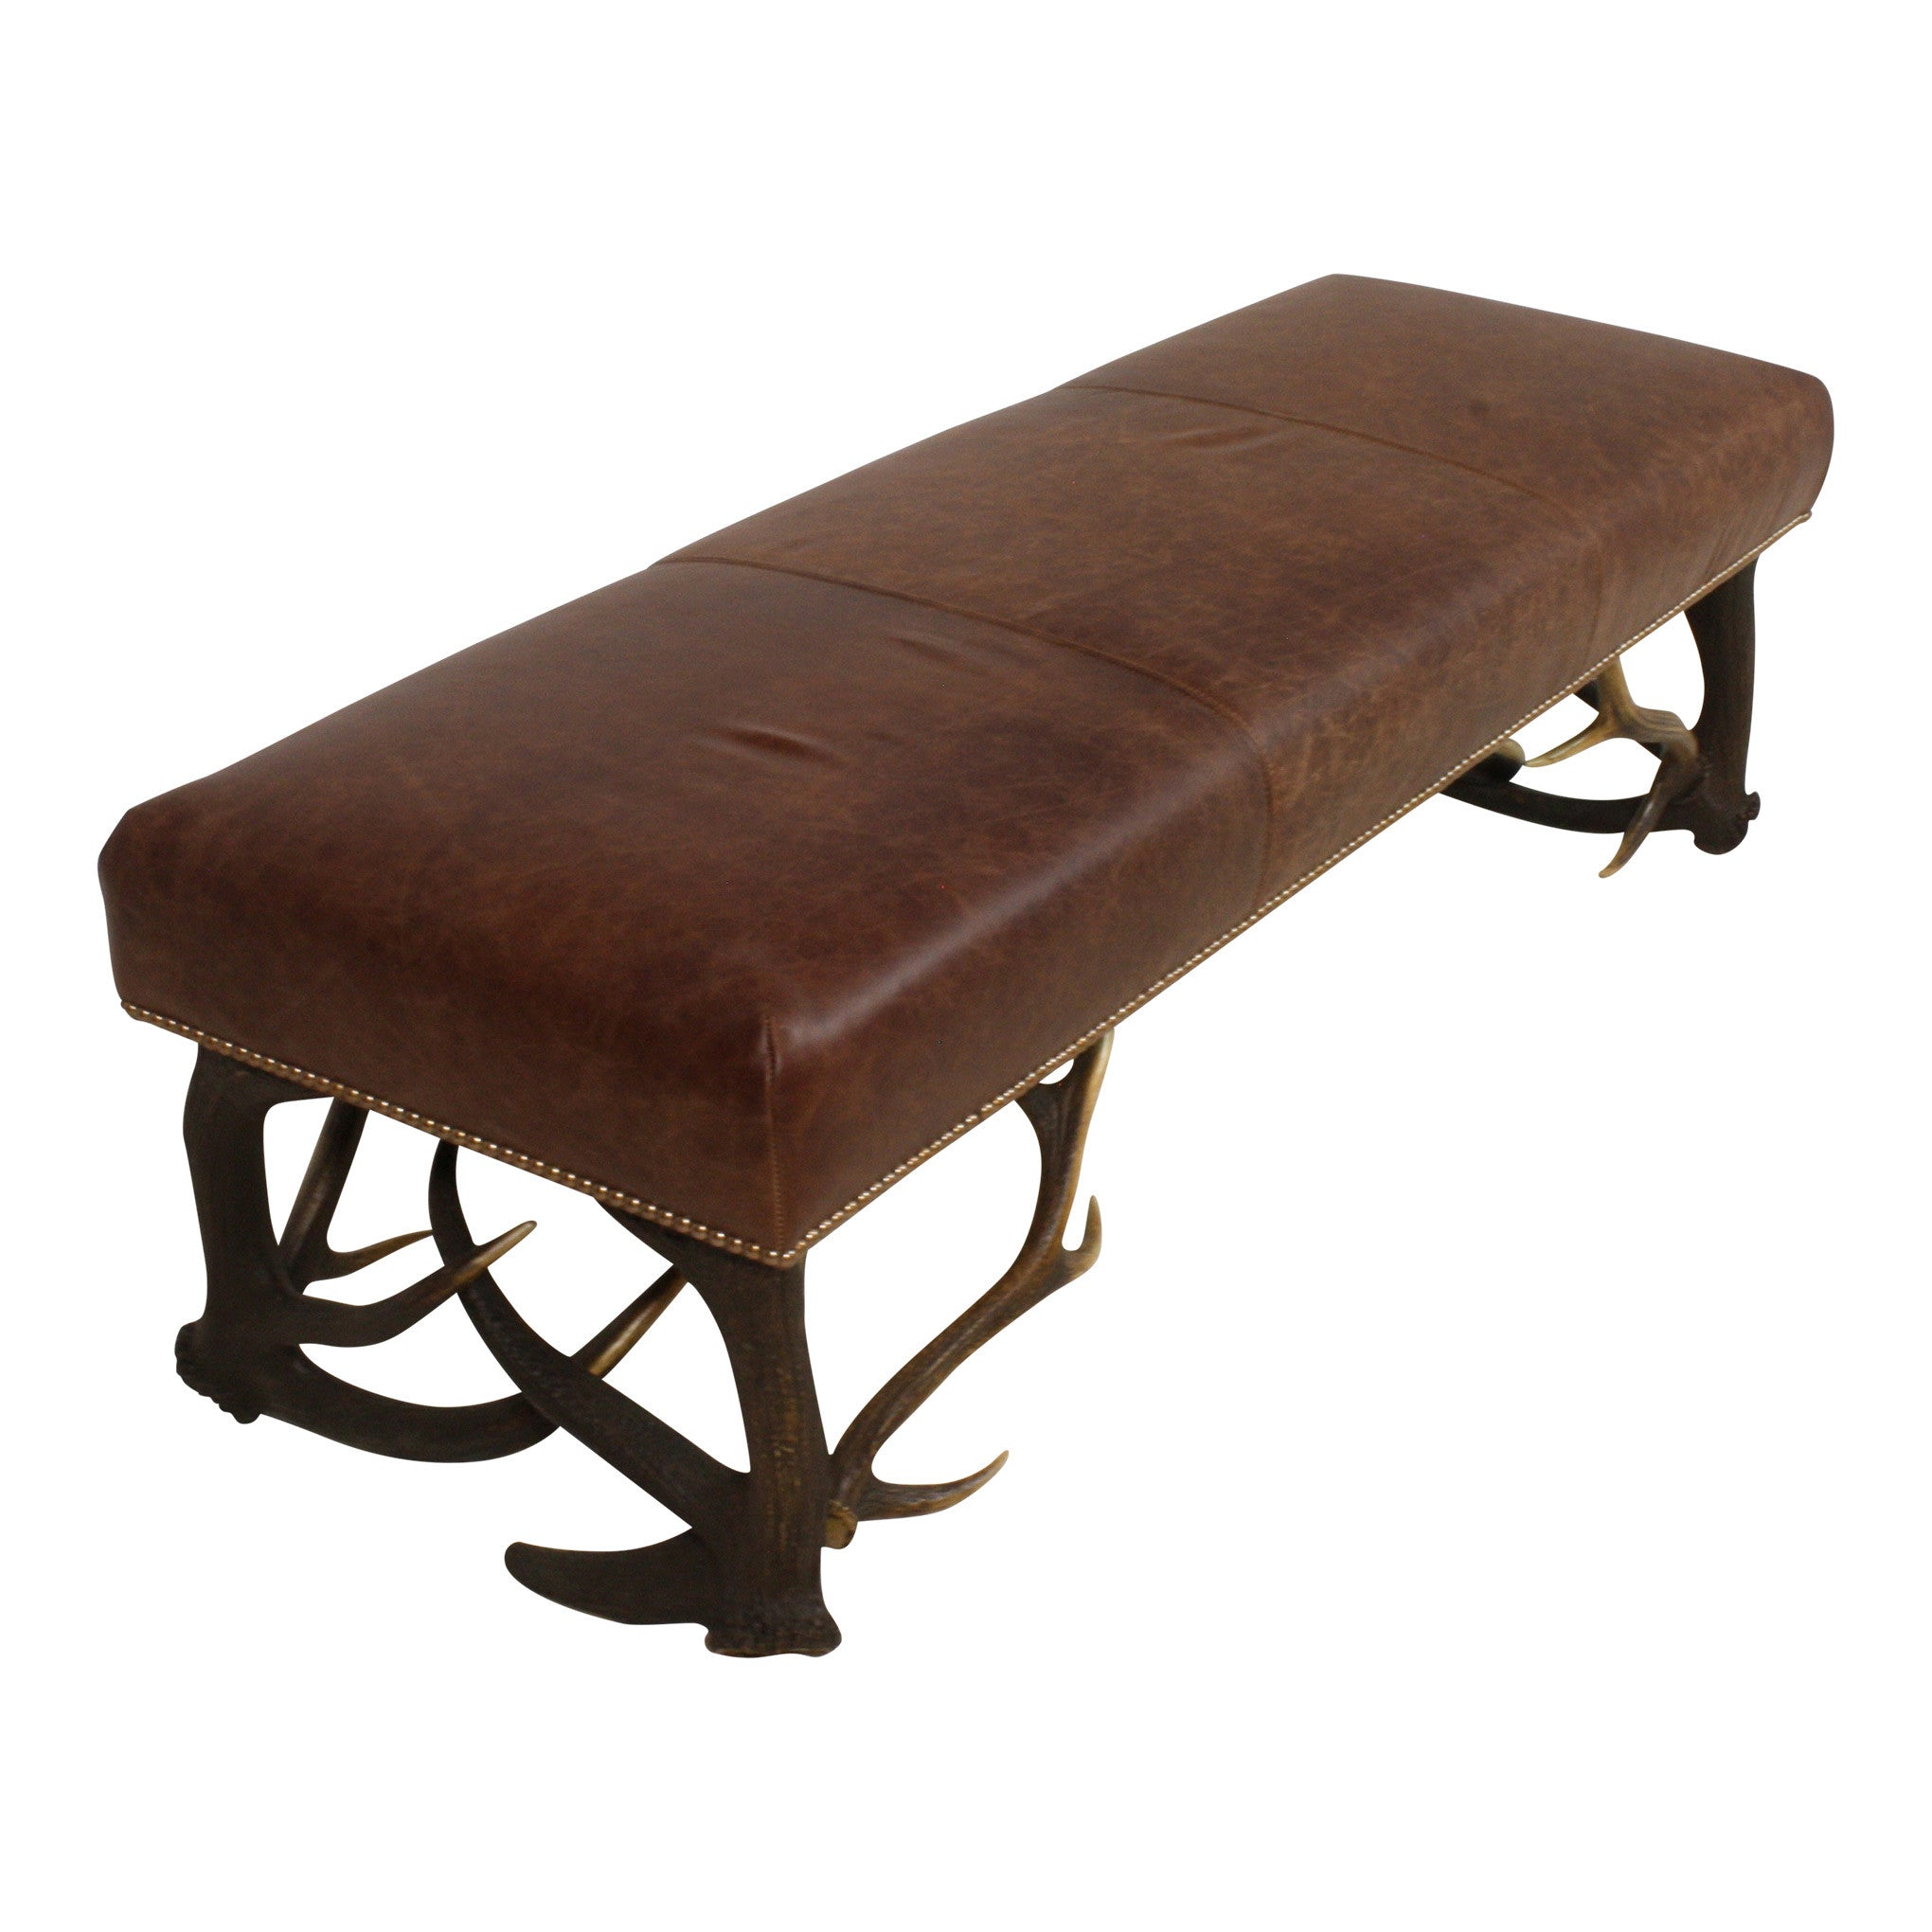 Leather Bench with Stag Antler Legs